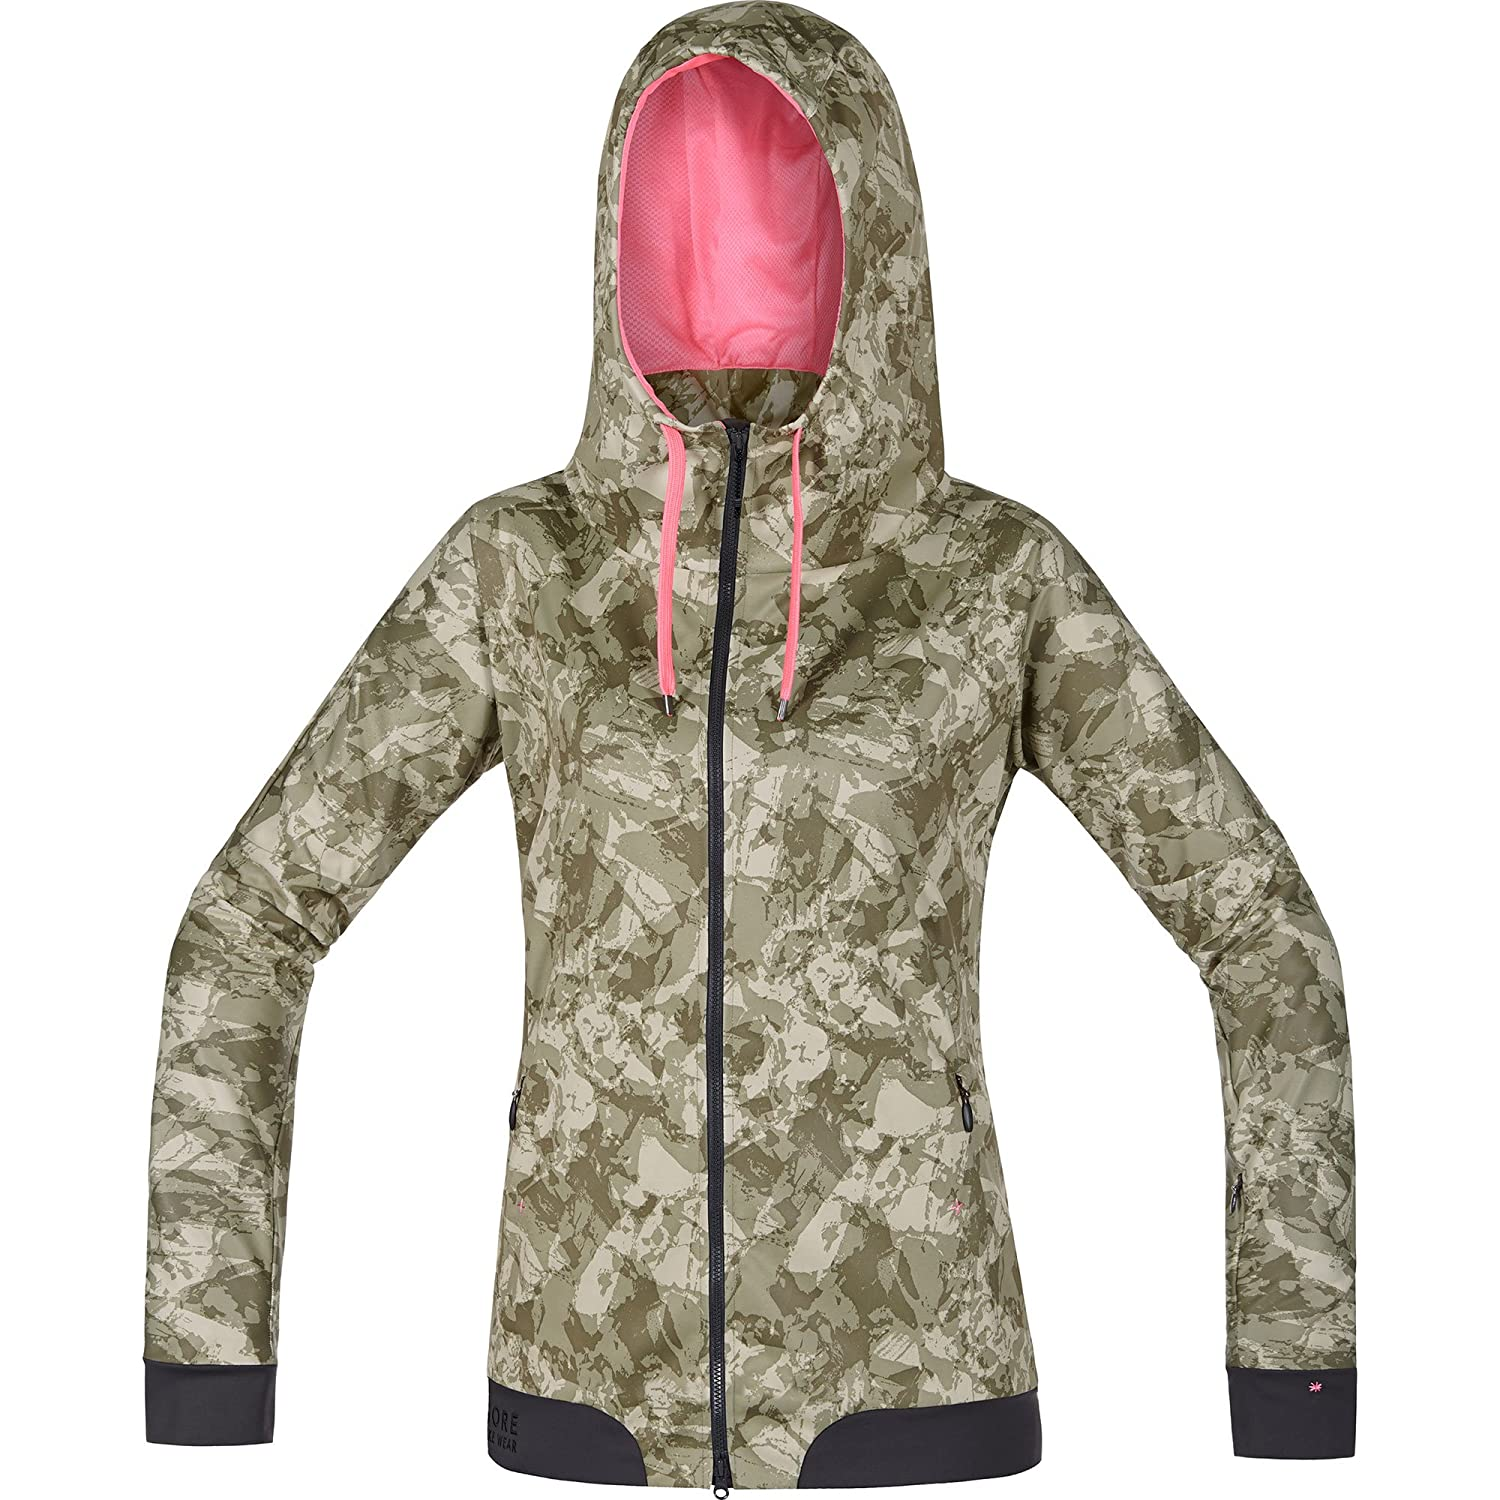 Gore Bike Wear Power Trail Print Windstopper Soft Shell - Chaqueta para Mujer, Color marrón: Amazon.es: Deportes y aire libre